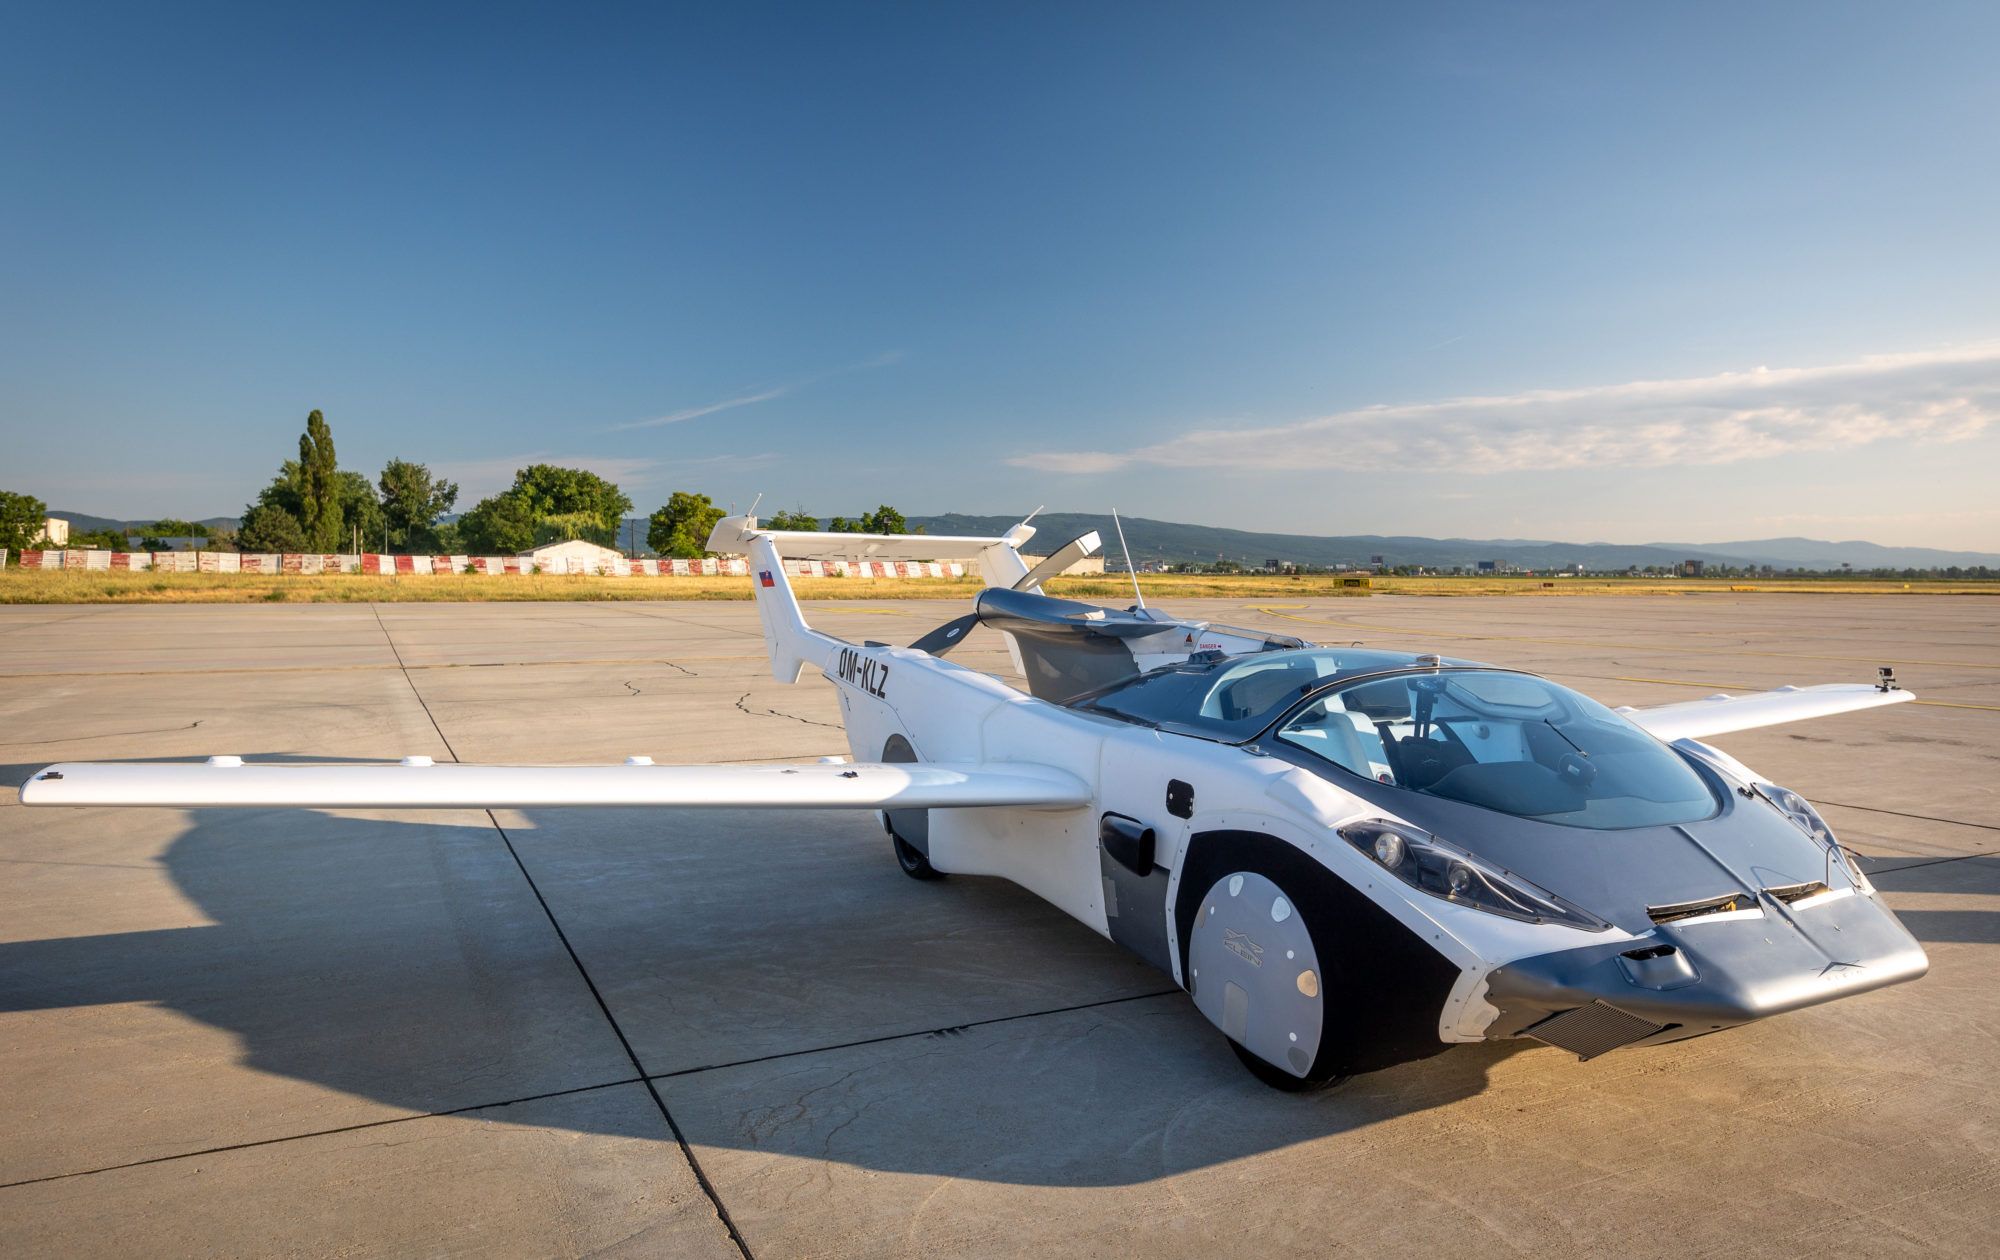 AirCar is equipped with a 160 horsepower BMW engine and stow-away wings.